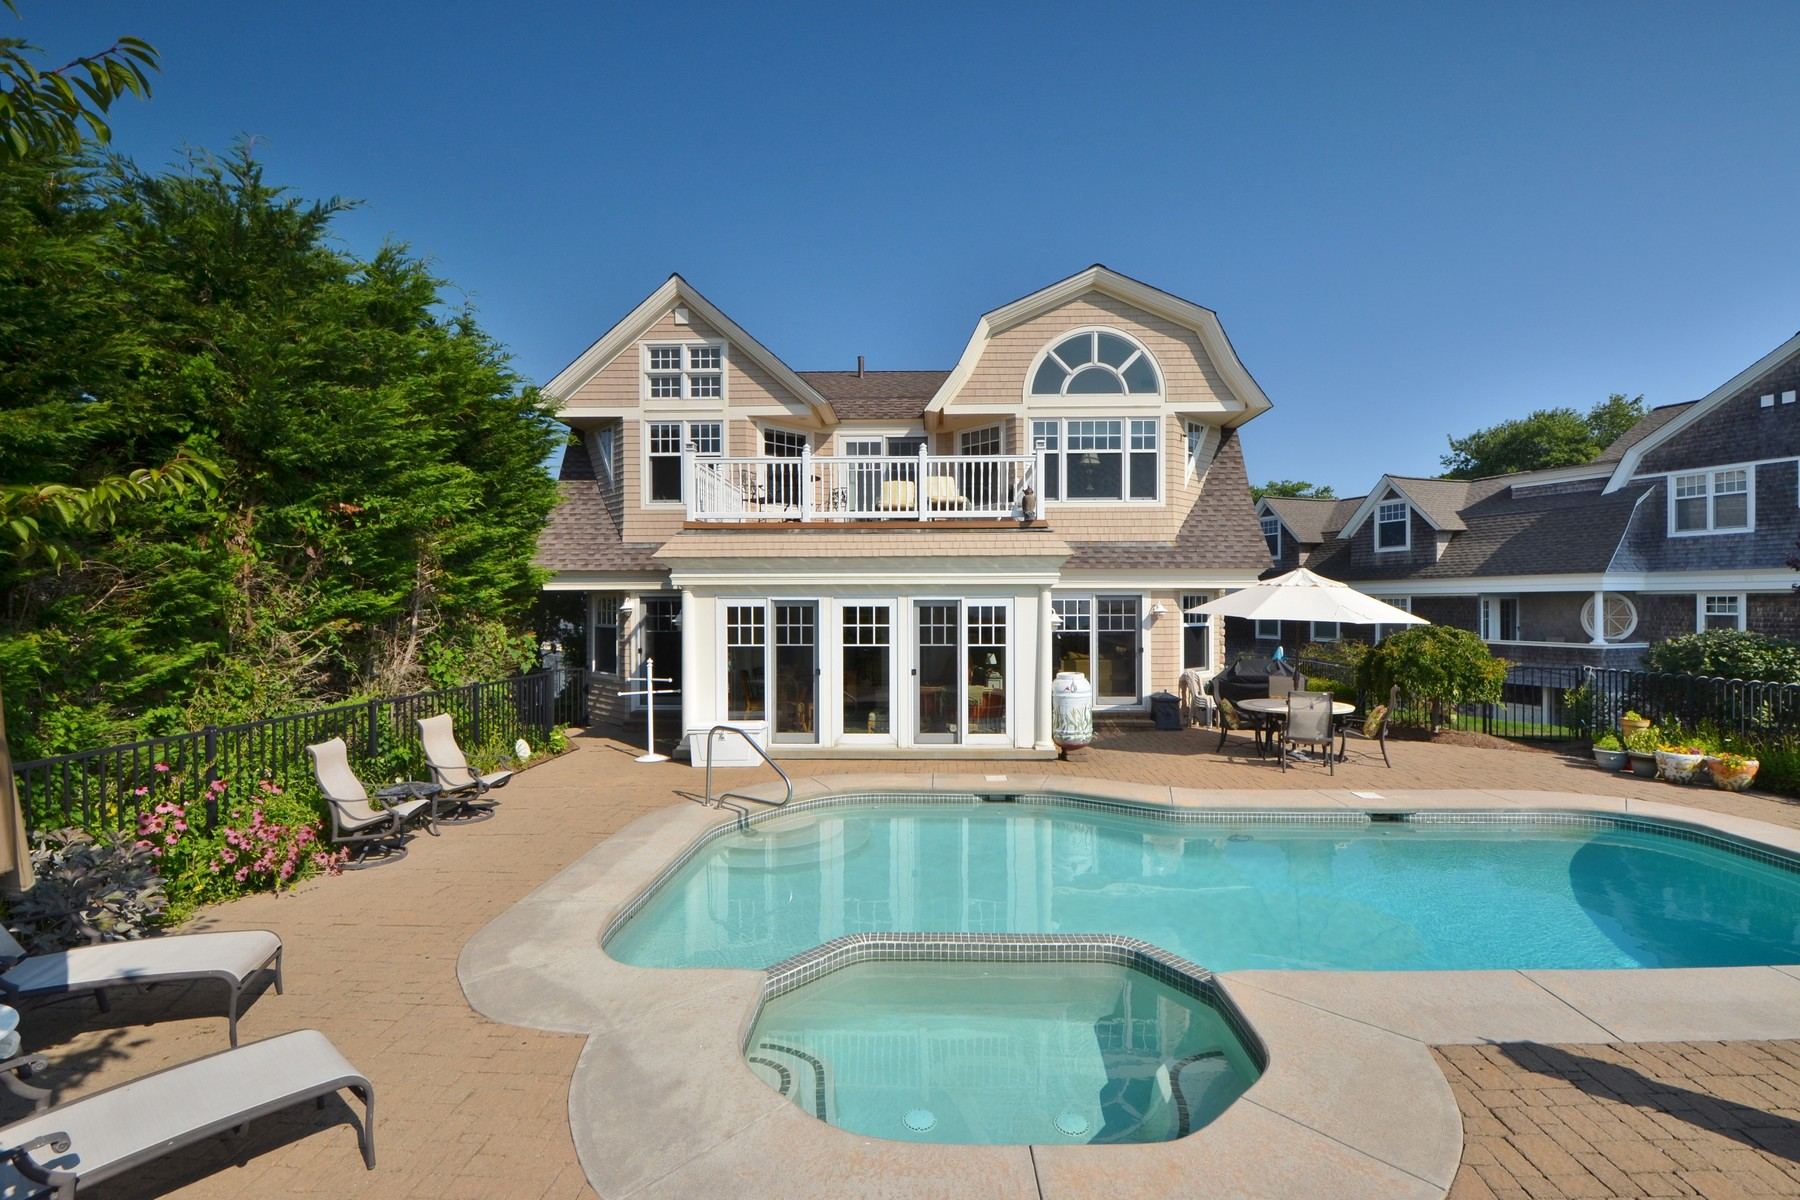 Moradia para Venda às Direct Waterfront Home Overlooks Long Island Sound 10 Billow Rd Old Saybrook, Connecticut, 06475 Estados Unidos